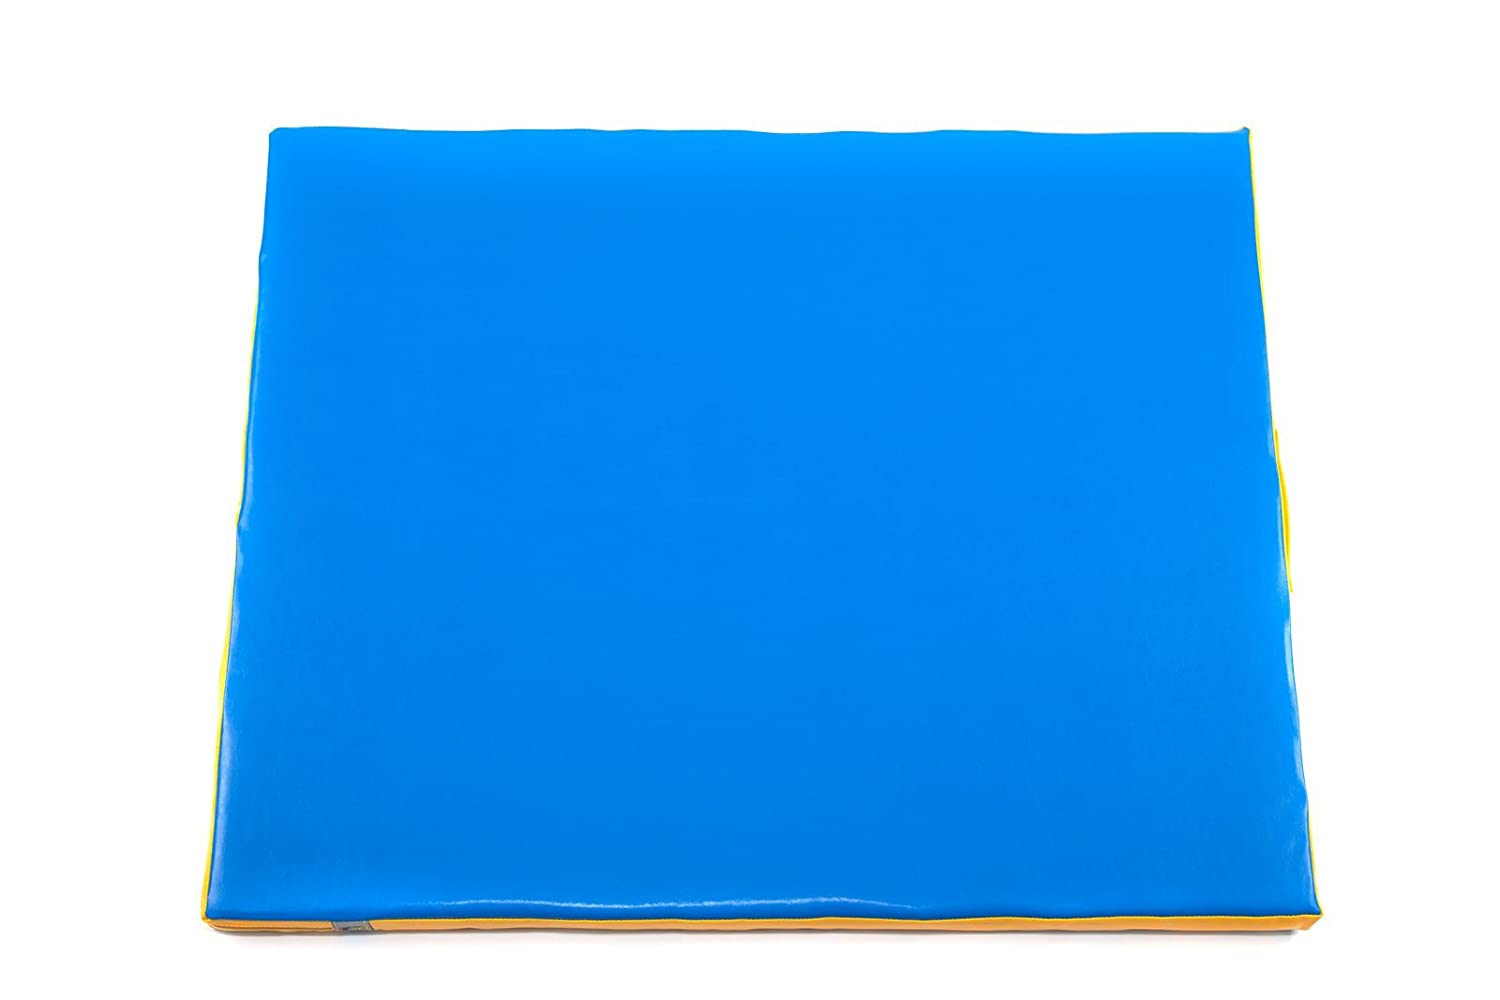 EZPLAY Premium Exercise Foam Mat 2 Thick, Perfect for Children s Active Play, Blue and Yellow, PU Leather, Zipper and Handle